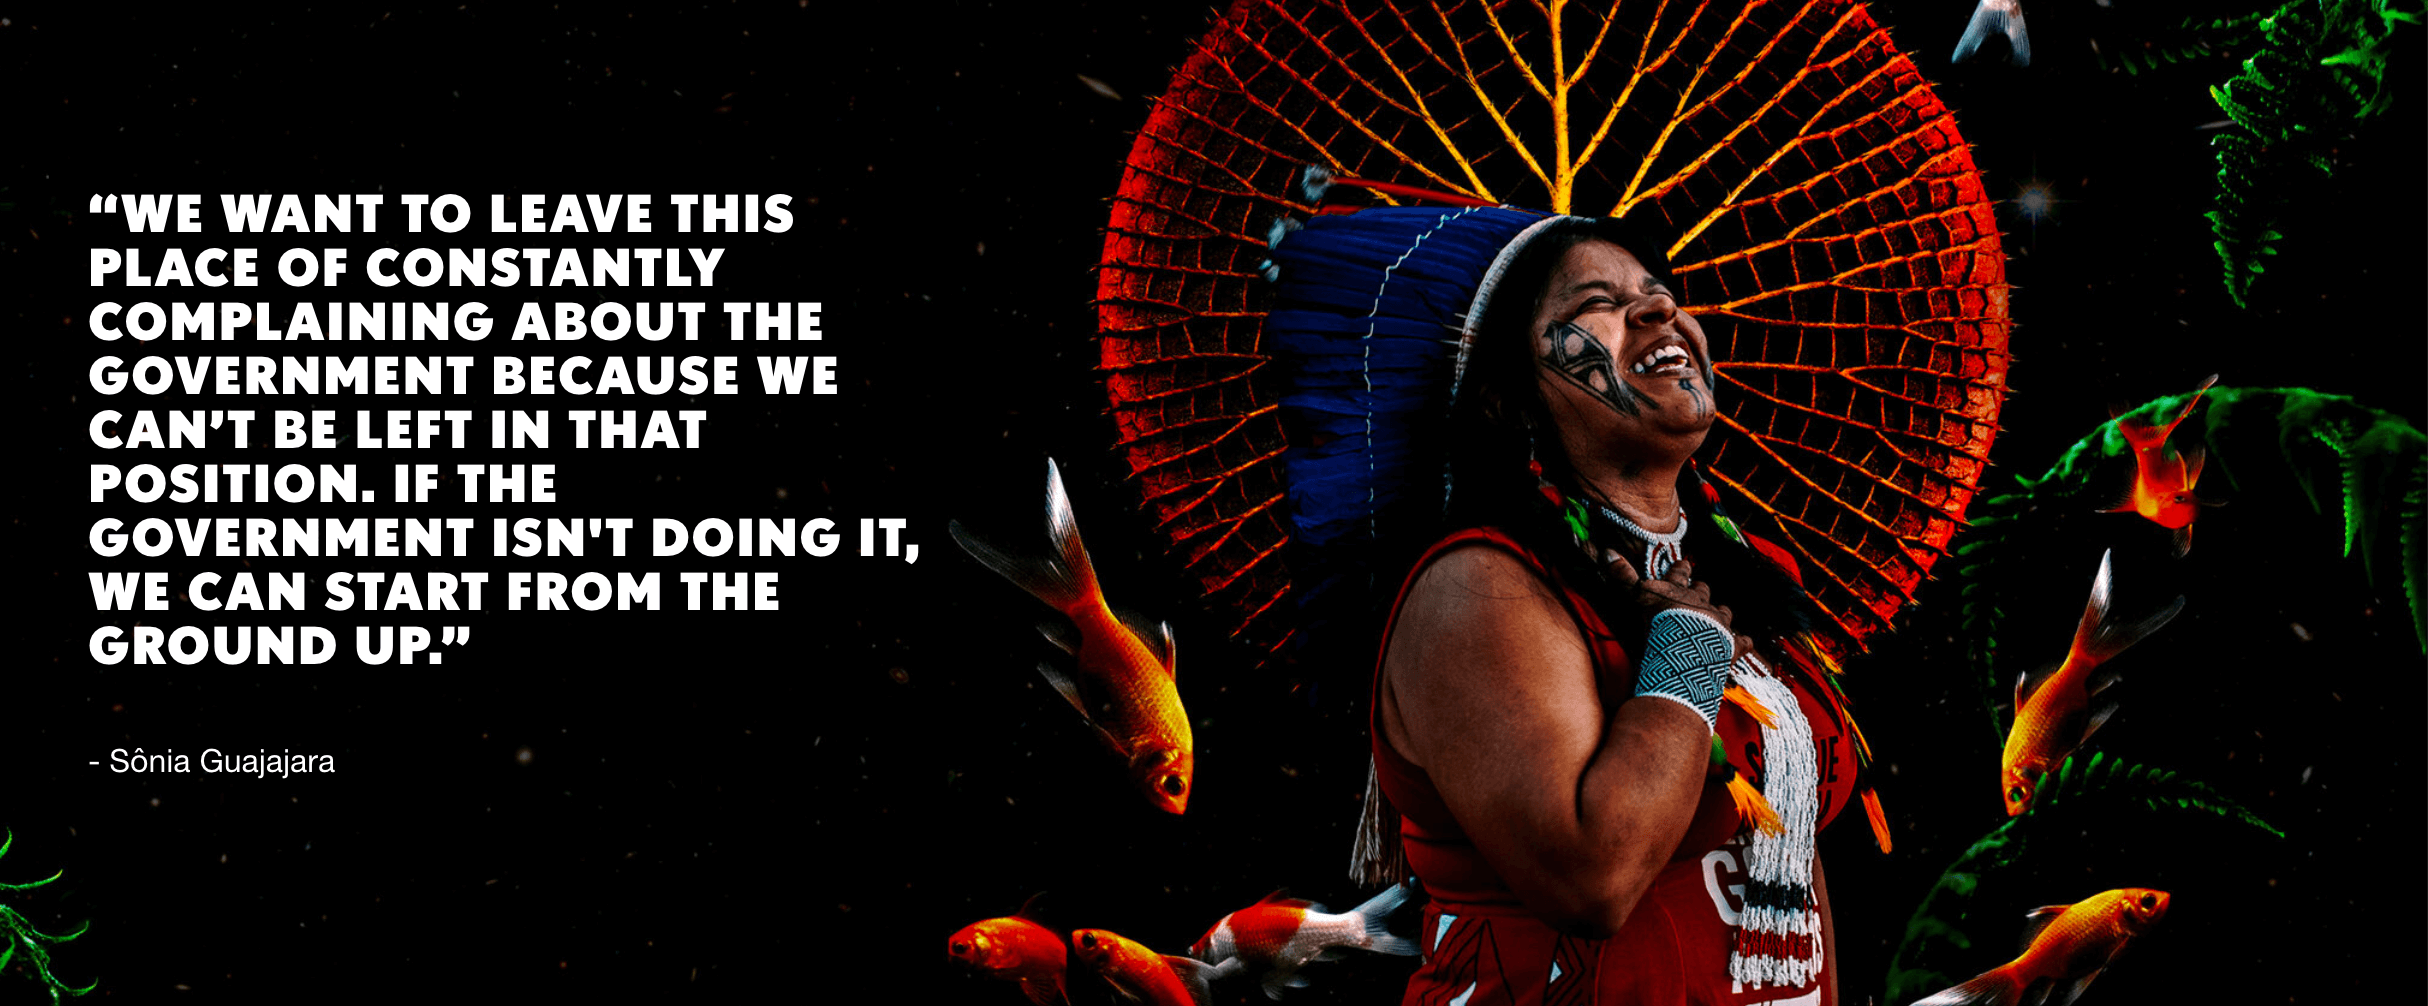 CHOOSE EARTH poster with a female indigenous leader and quote